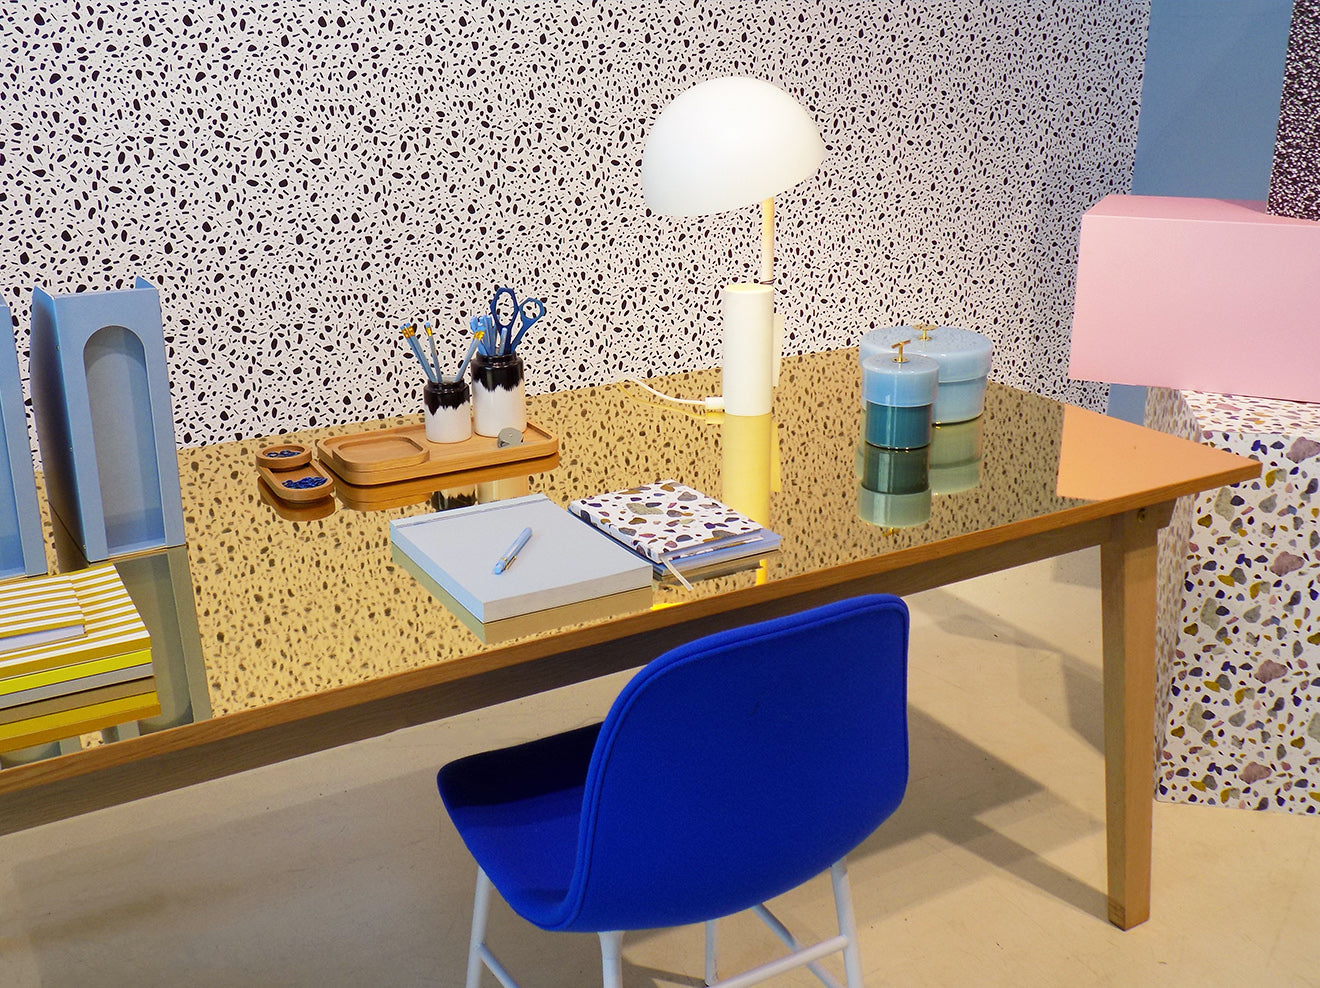 Normann Copenhagen flagship store designer stationary collection